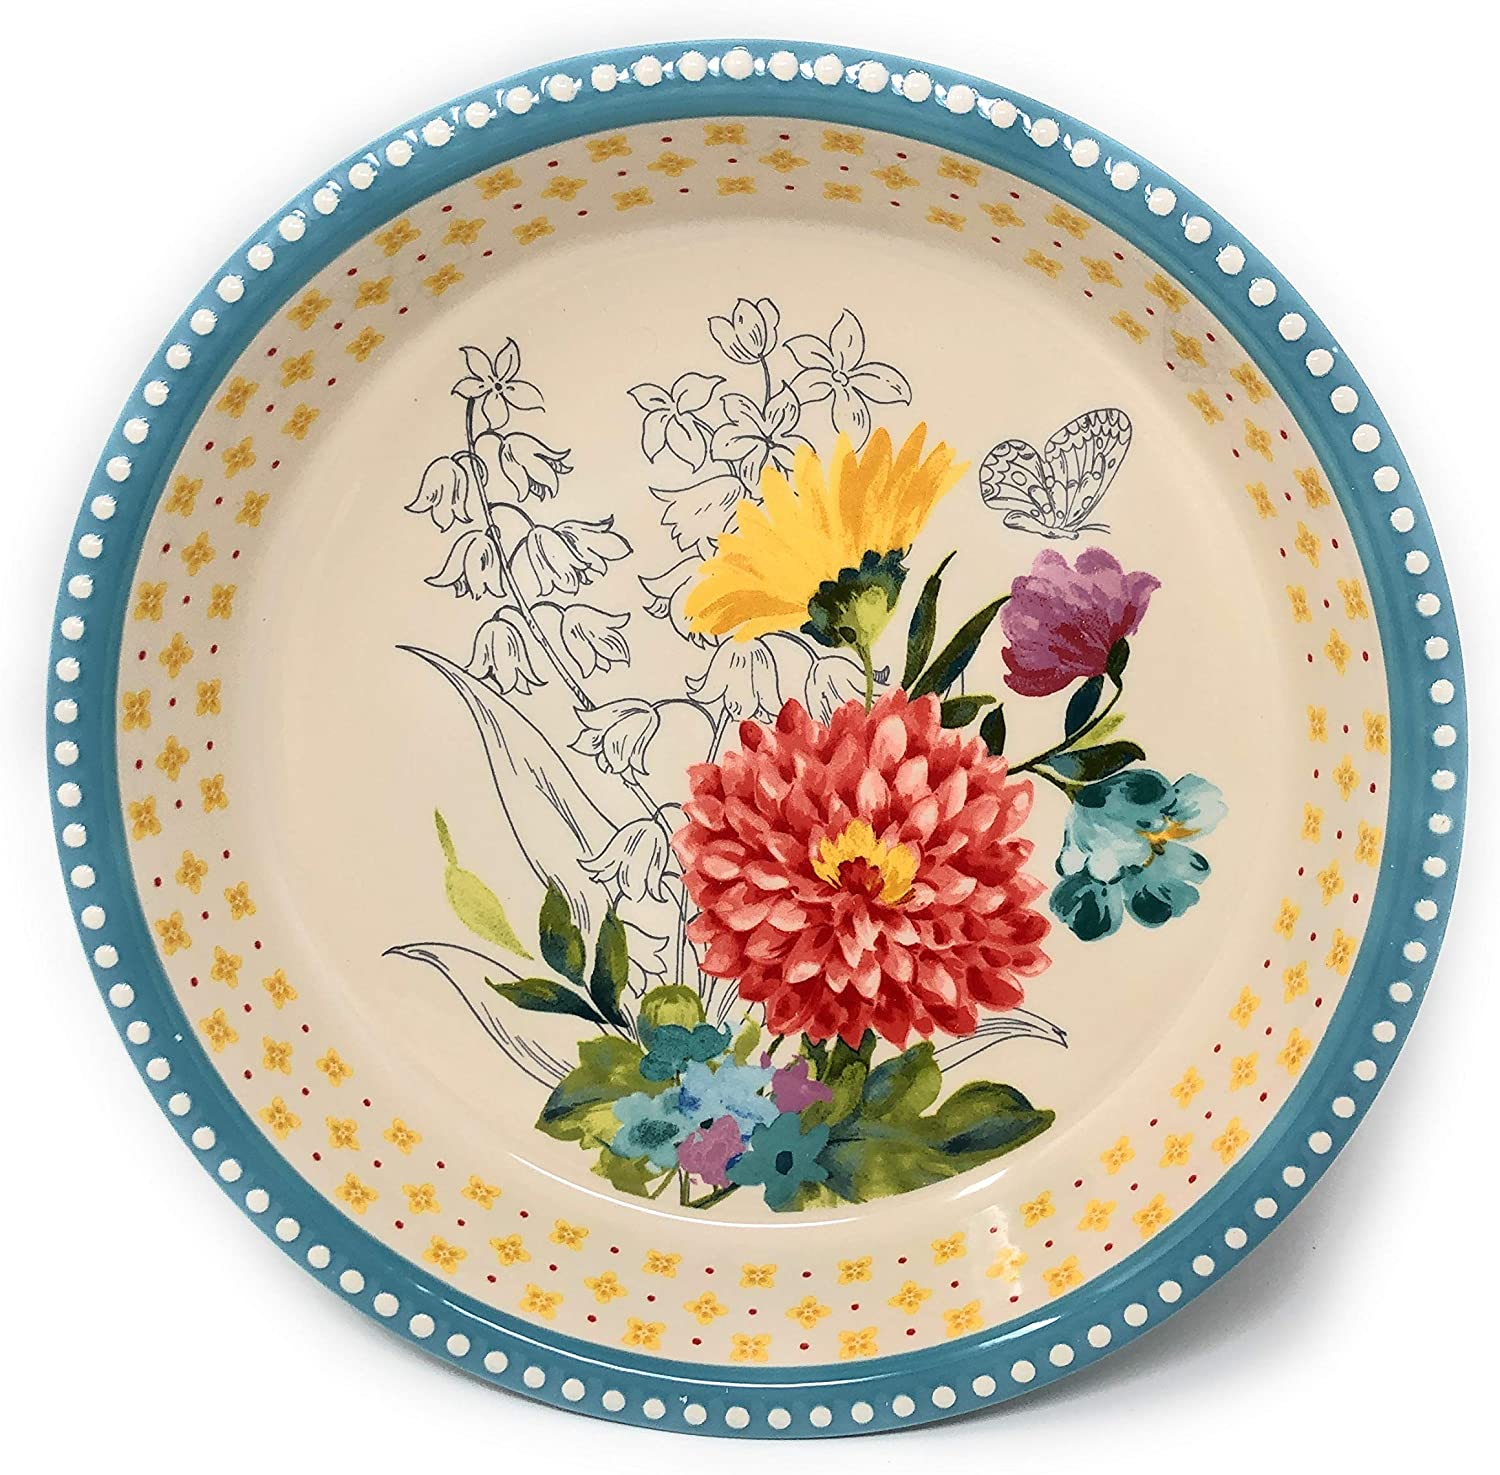 The Pioneer Woman Blooming Bouquet Pie Dish-Stoneware 9 Inch Pie Pan